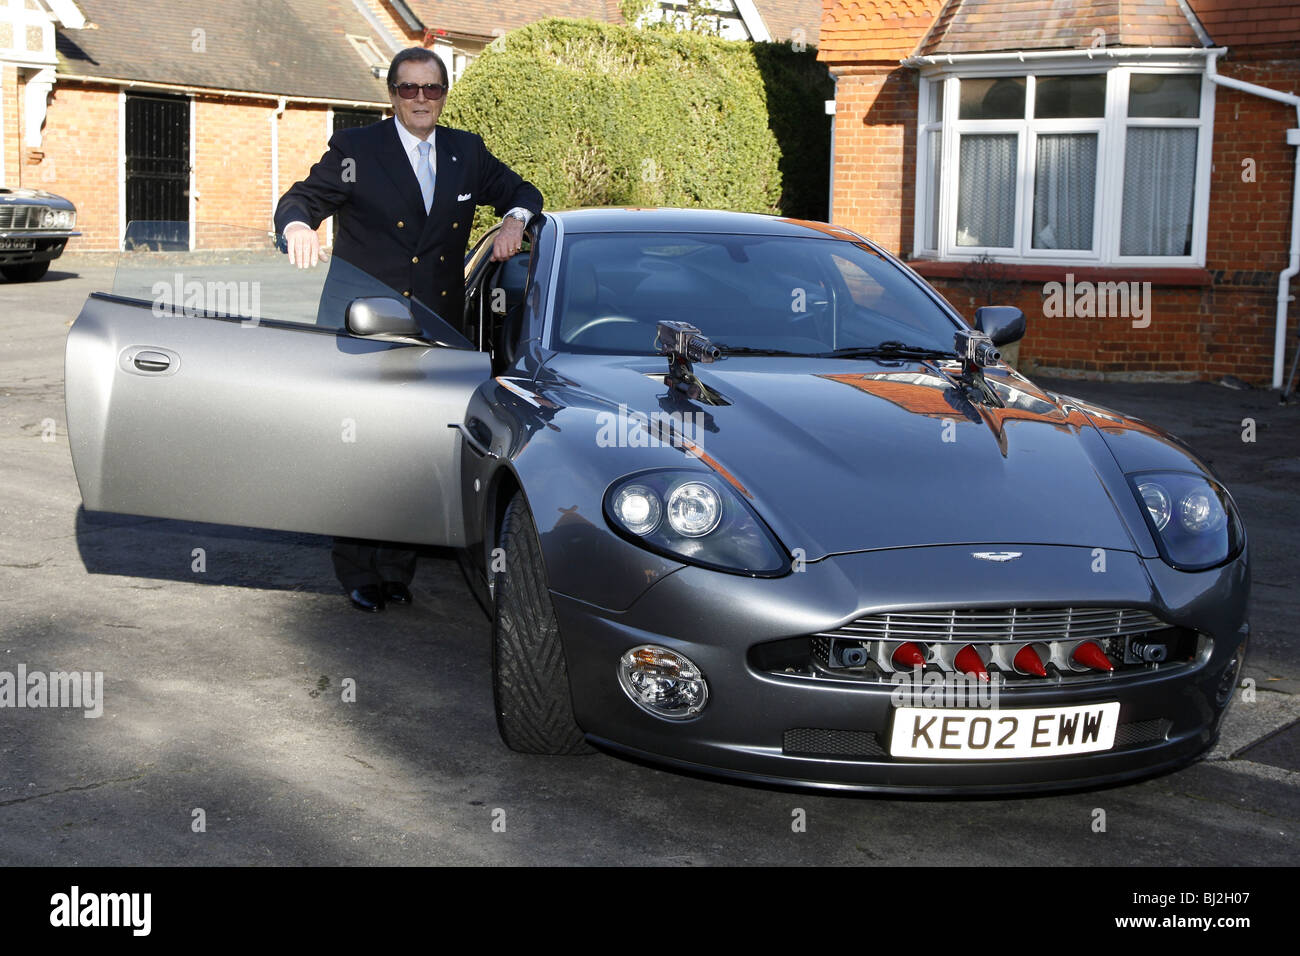 SIR ROGER MOORE WITH THE ASTON MARTIN VANQUISH FROM THE